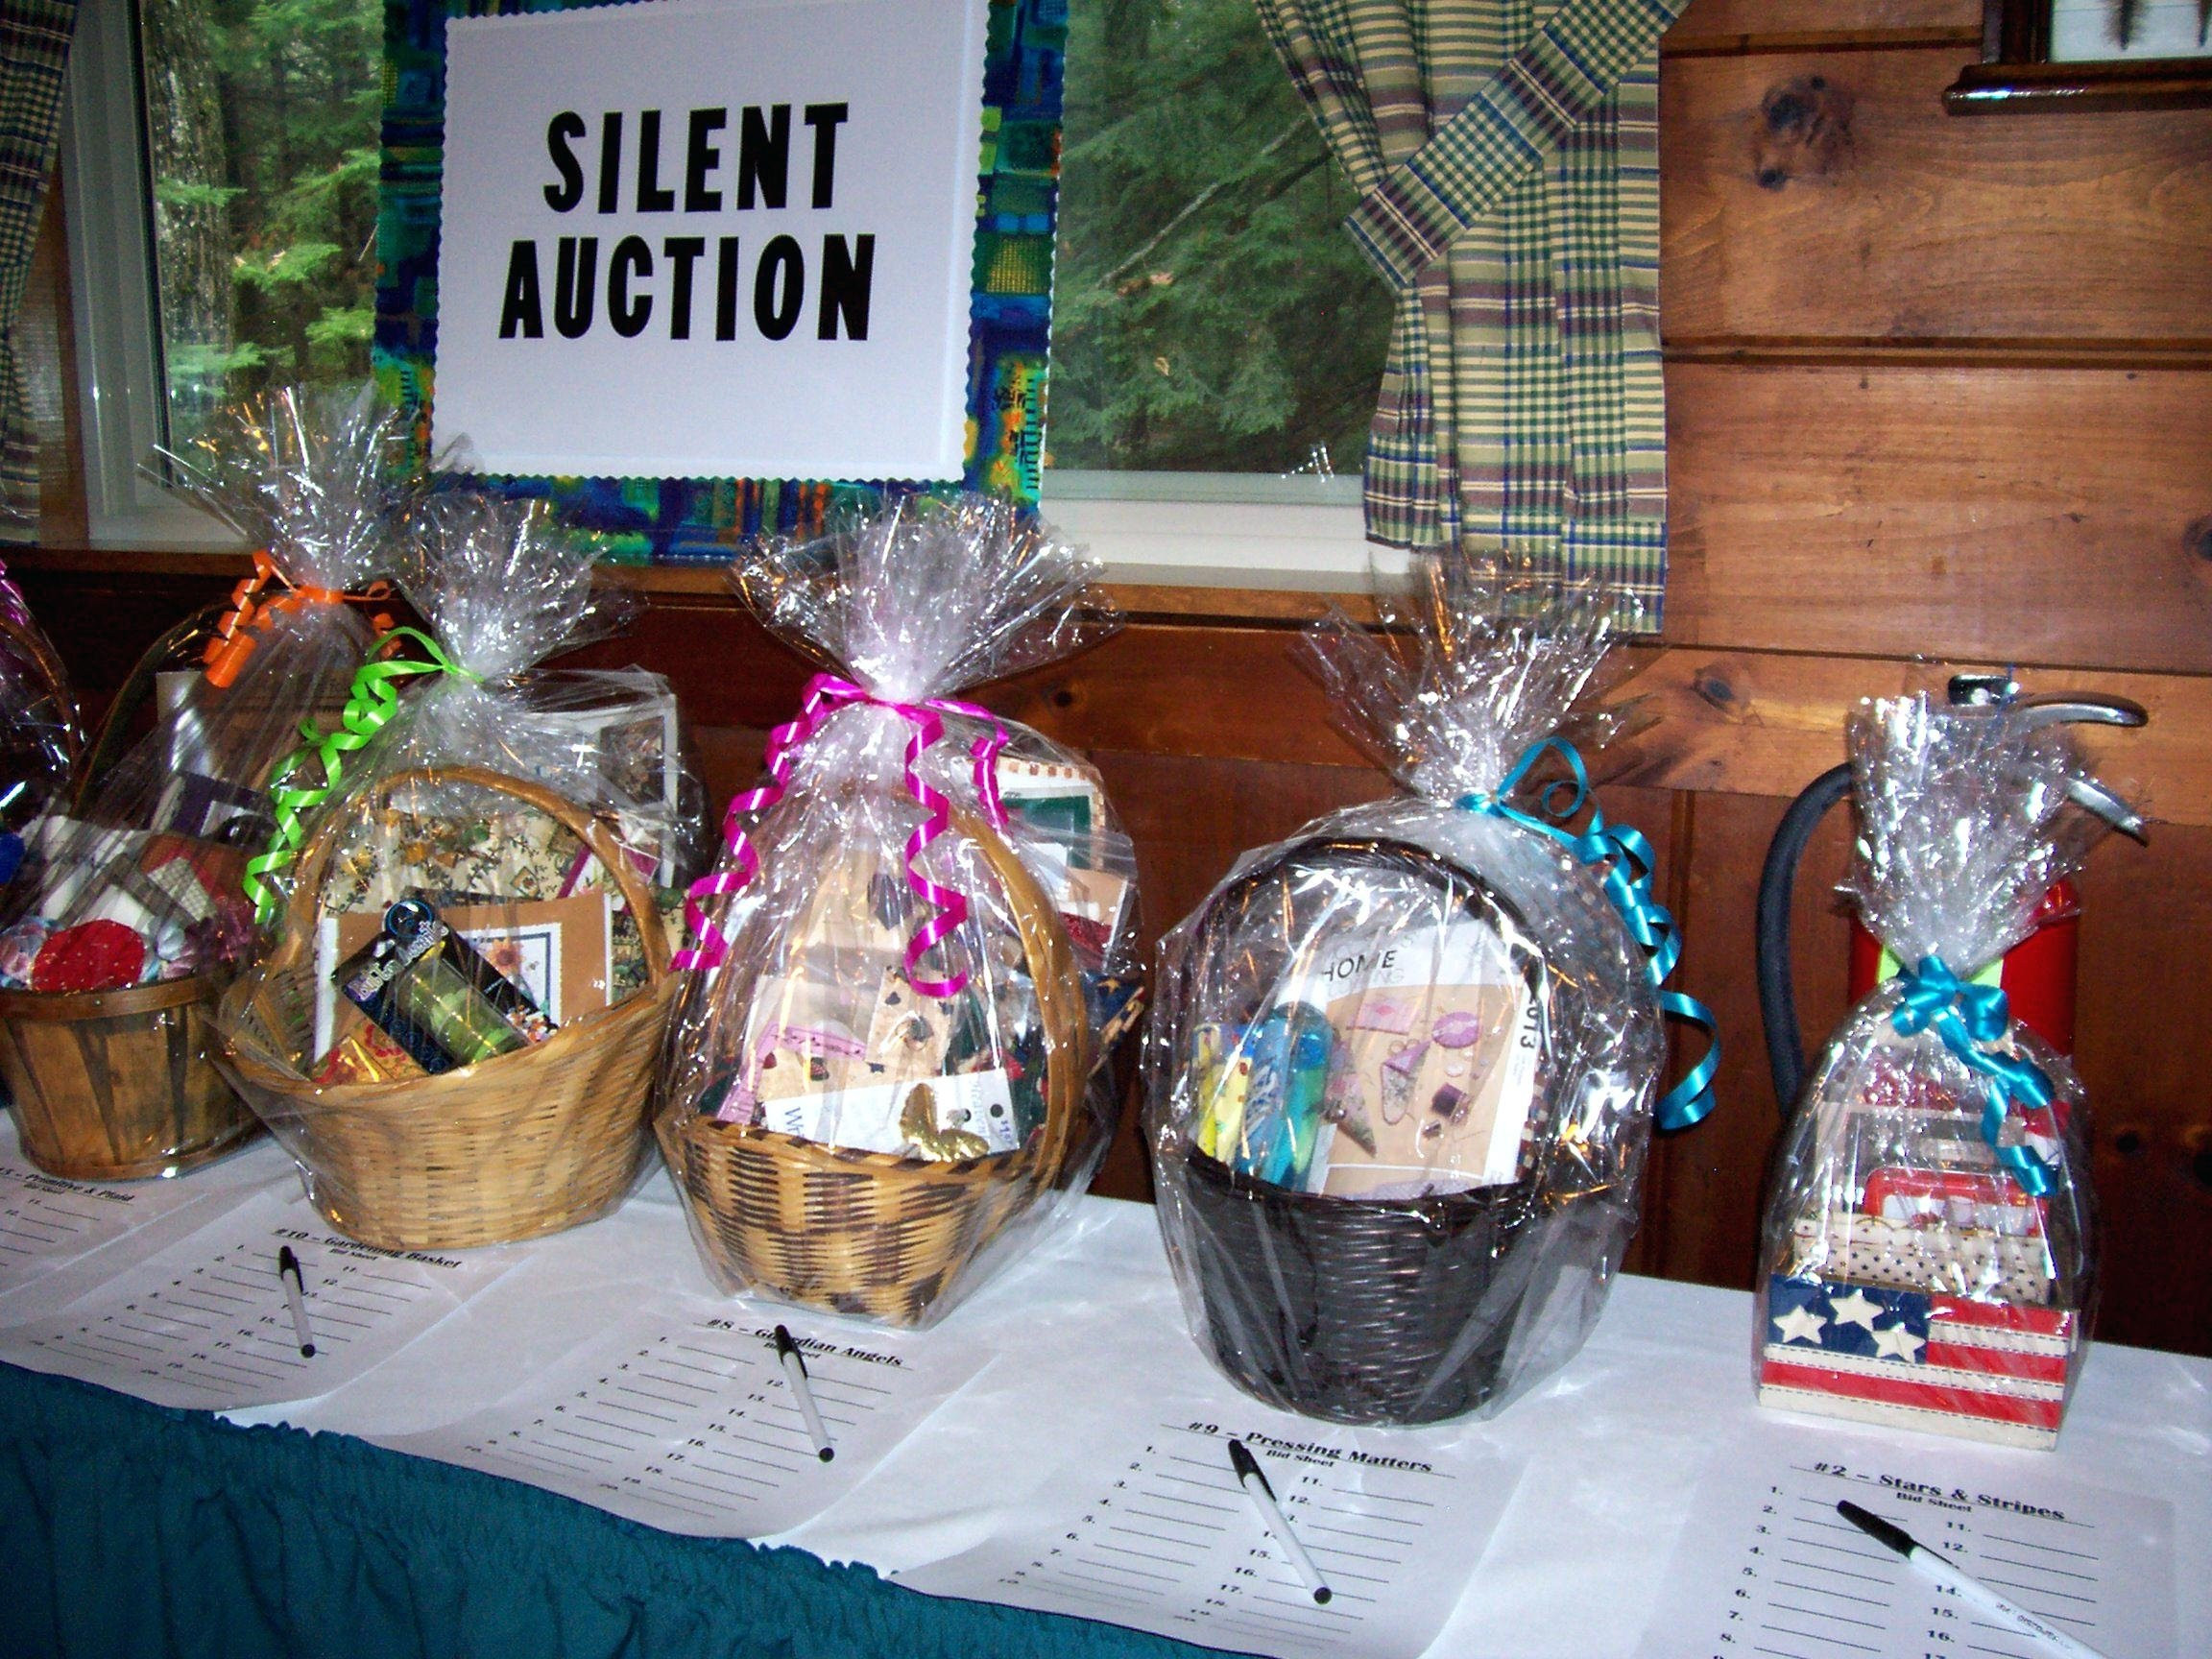 Gift Basket Ideas For Silent Auction Fundraiser  10 Cute Theme Basket Ideas For Silent Auction 2019